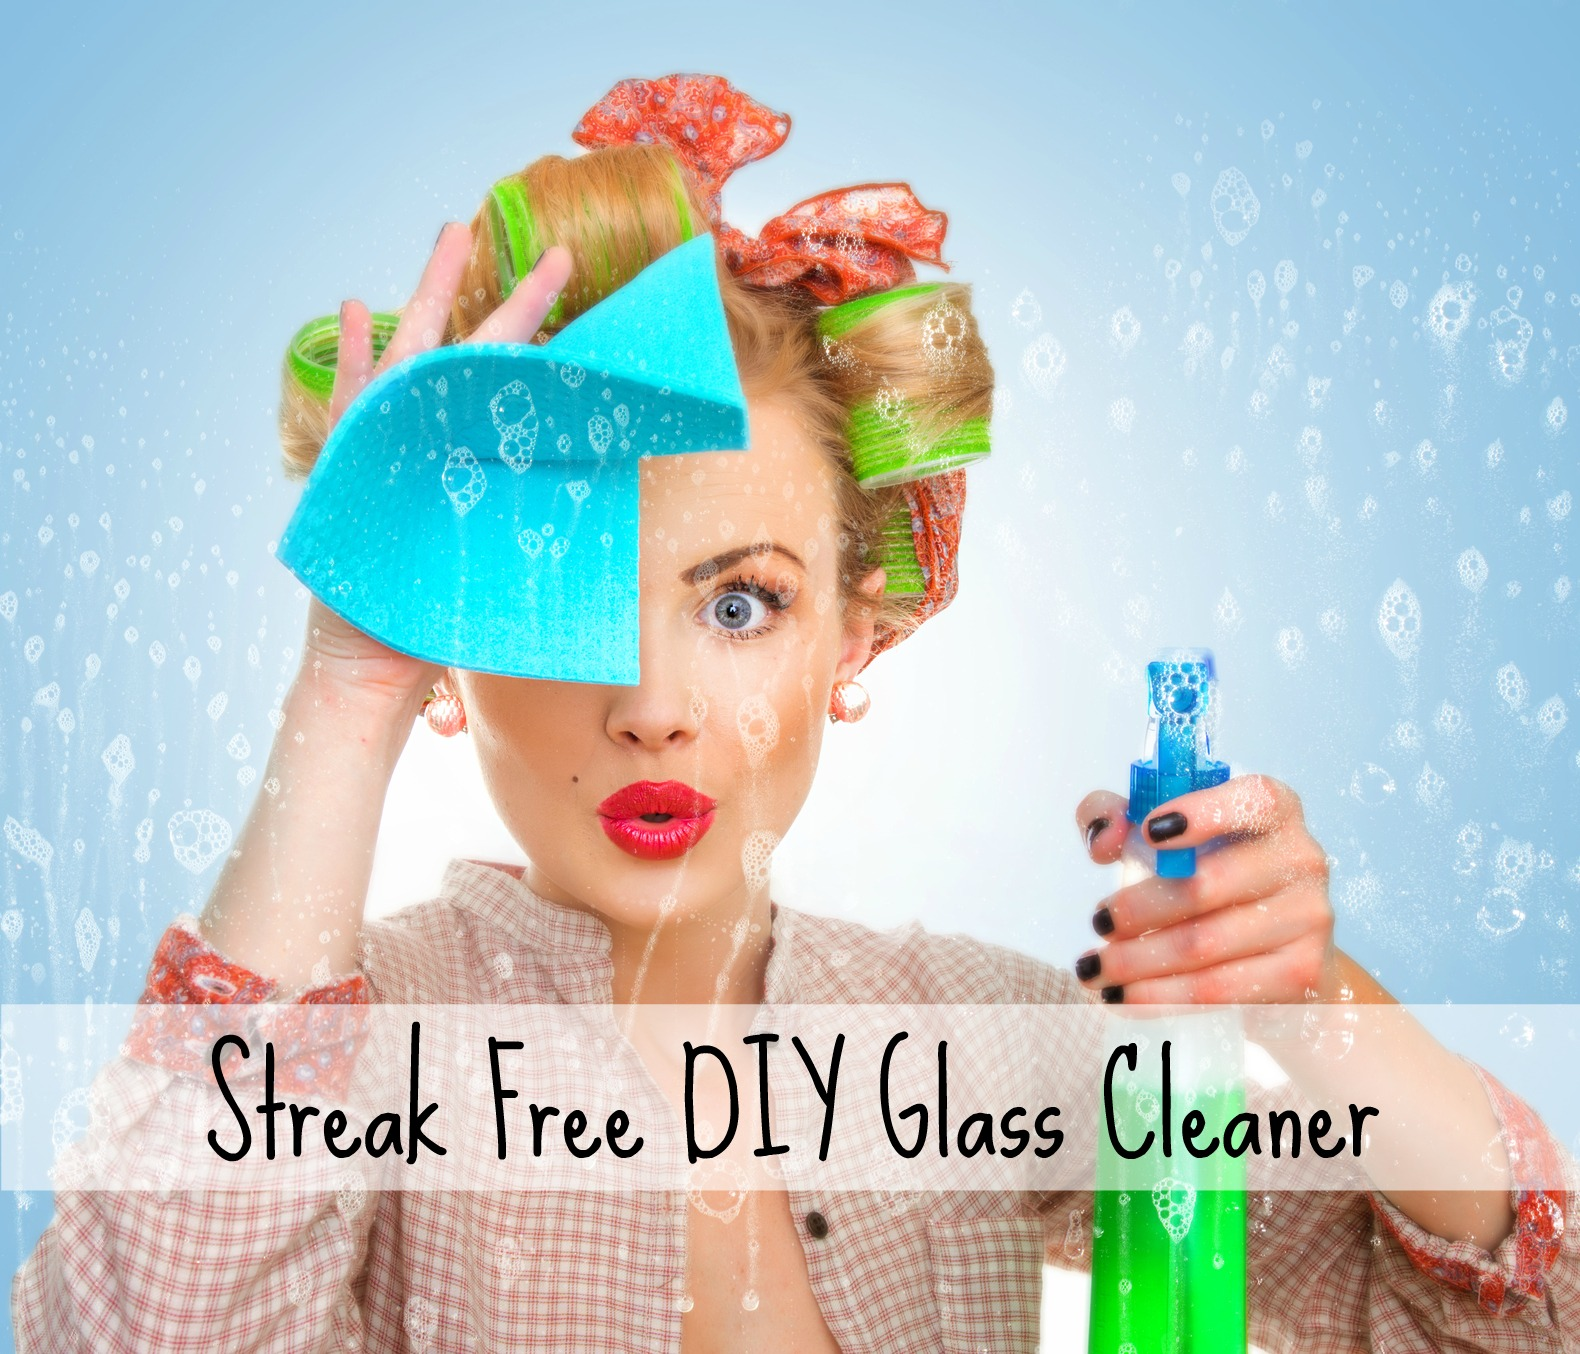 This is my fail proof recipe for streak free DIY glass cleaner.